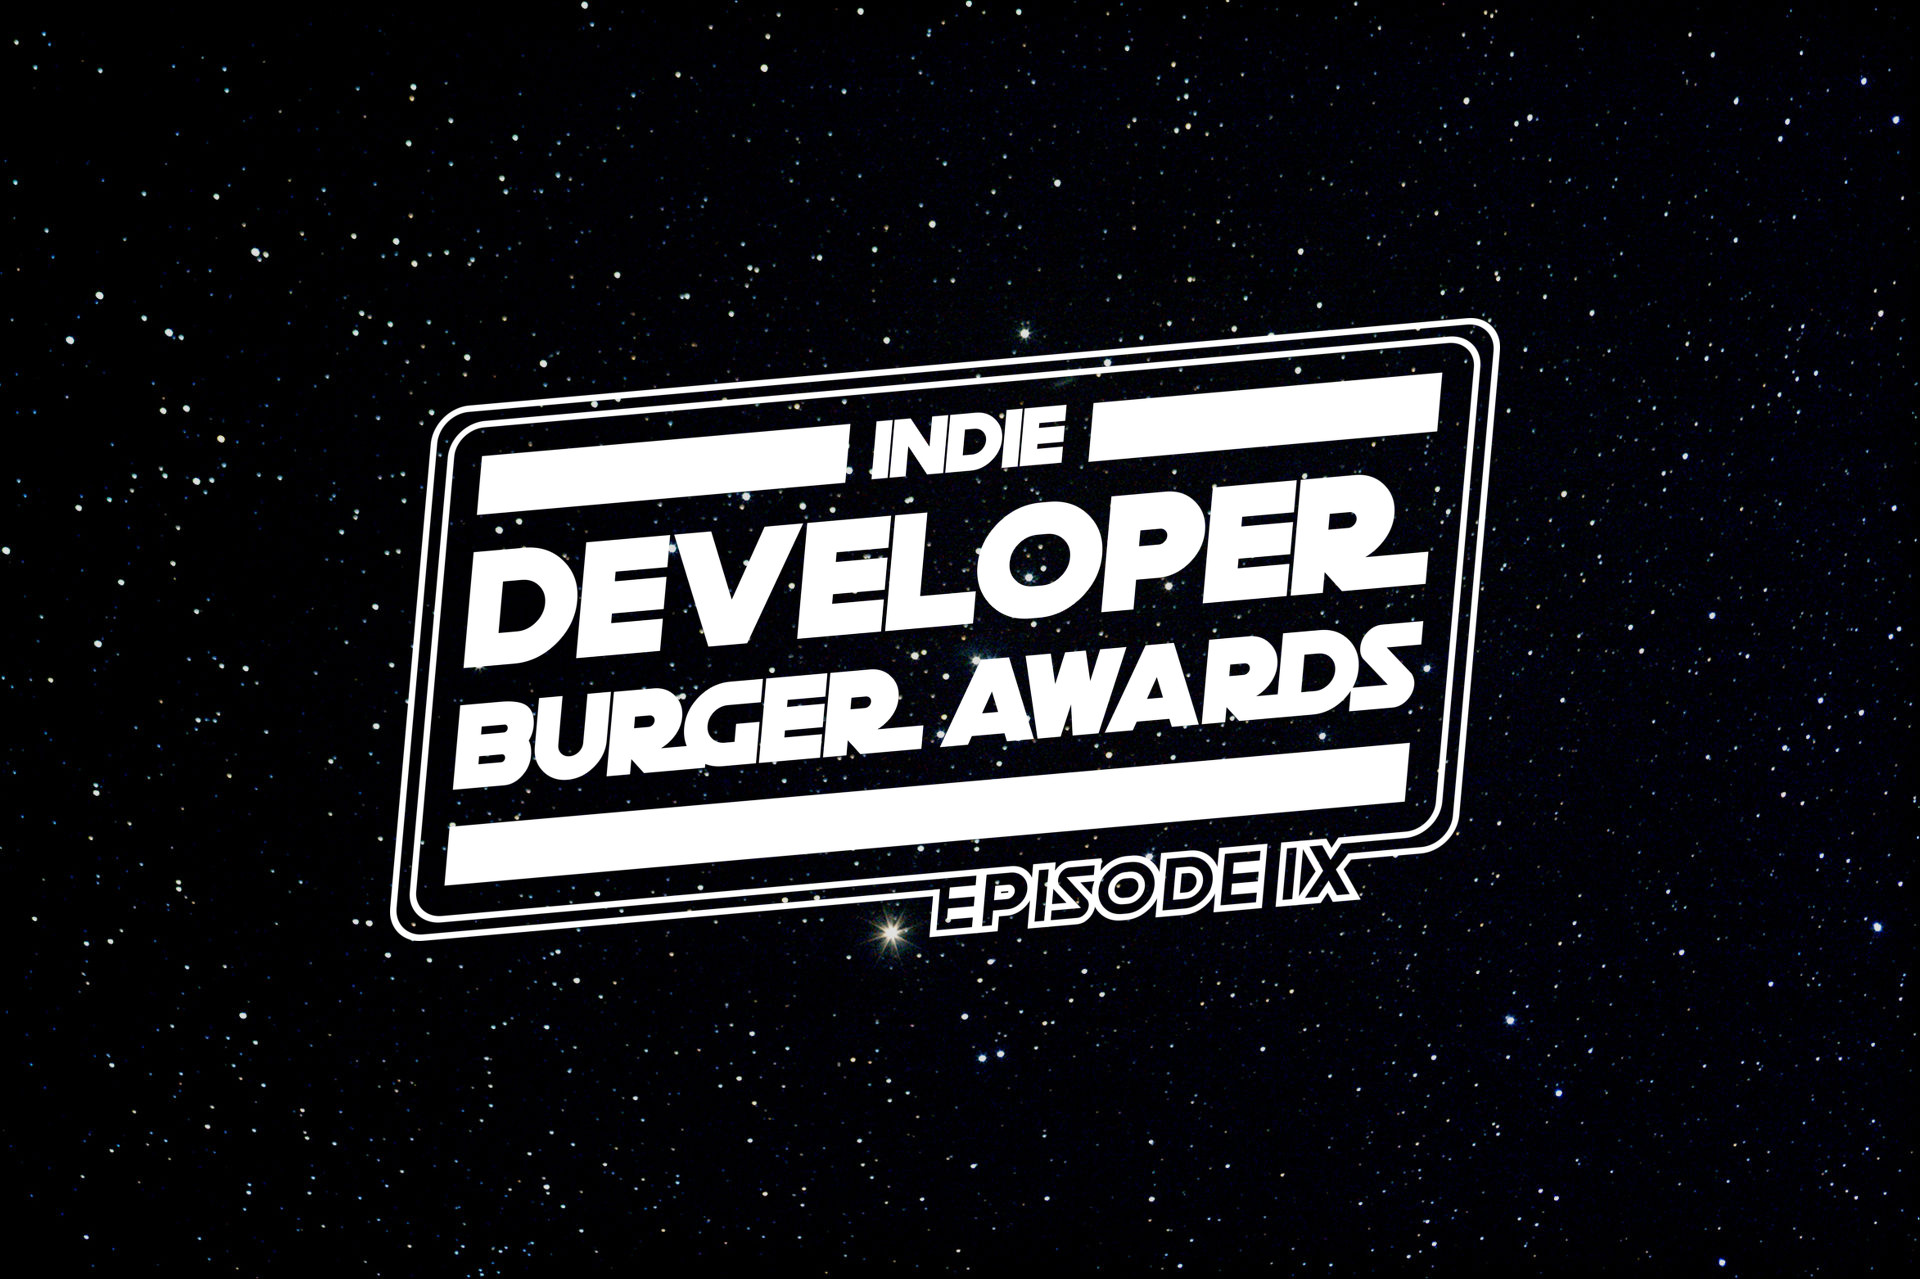 Indie Developer Burger Awards 2020